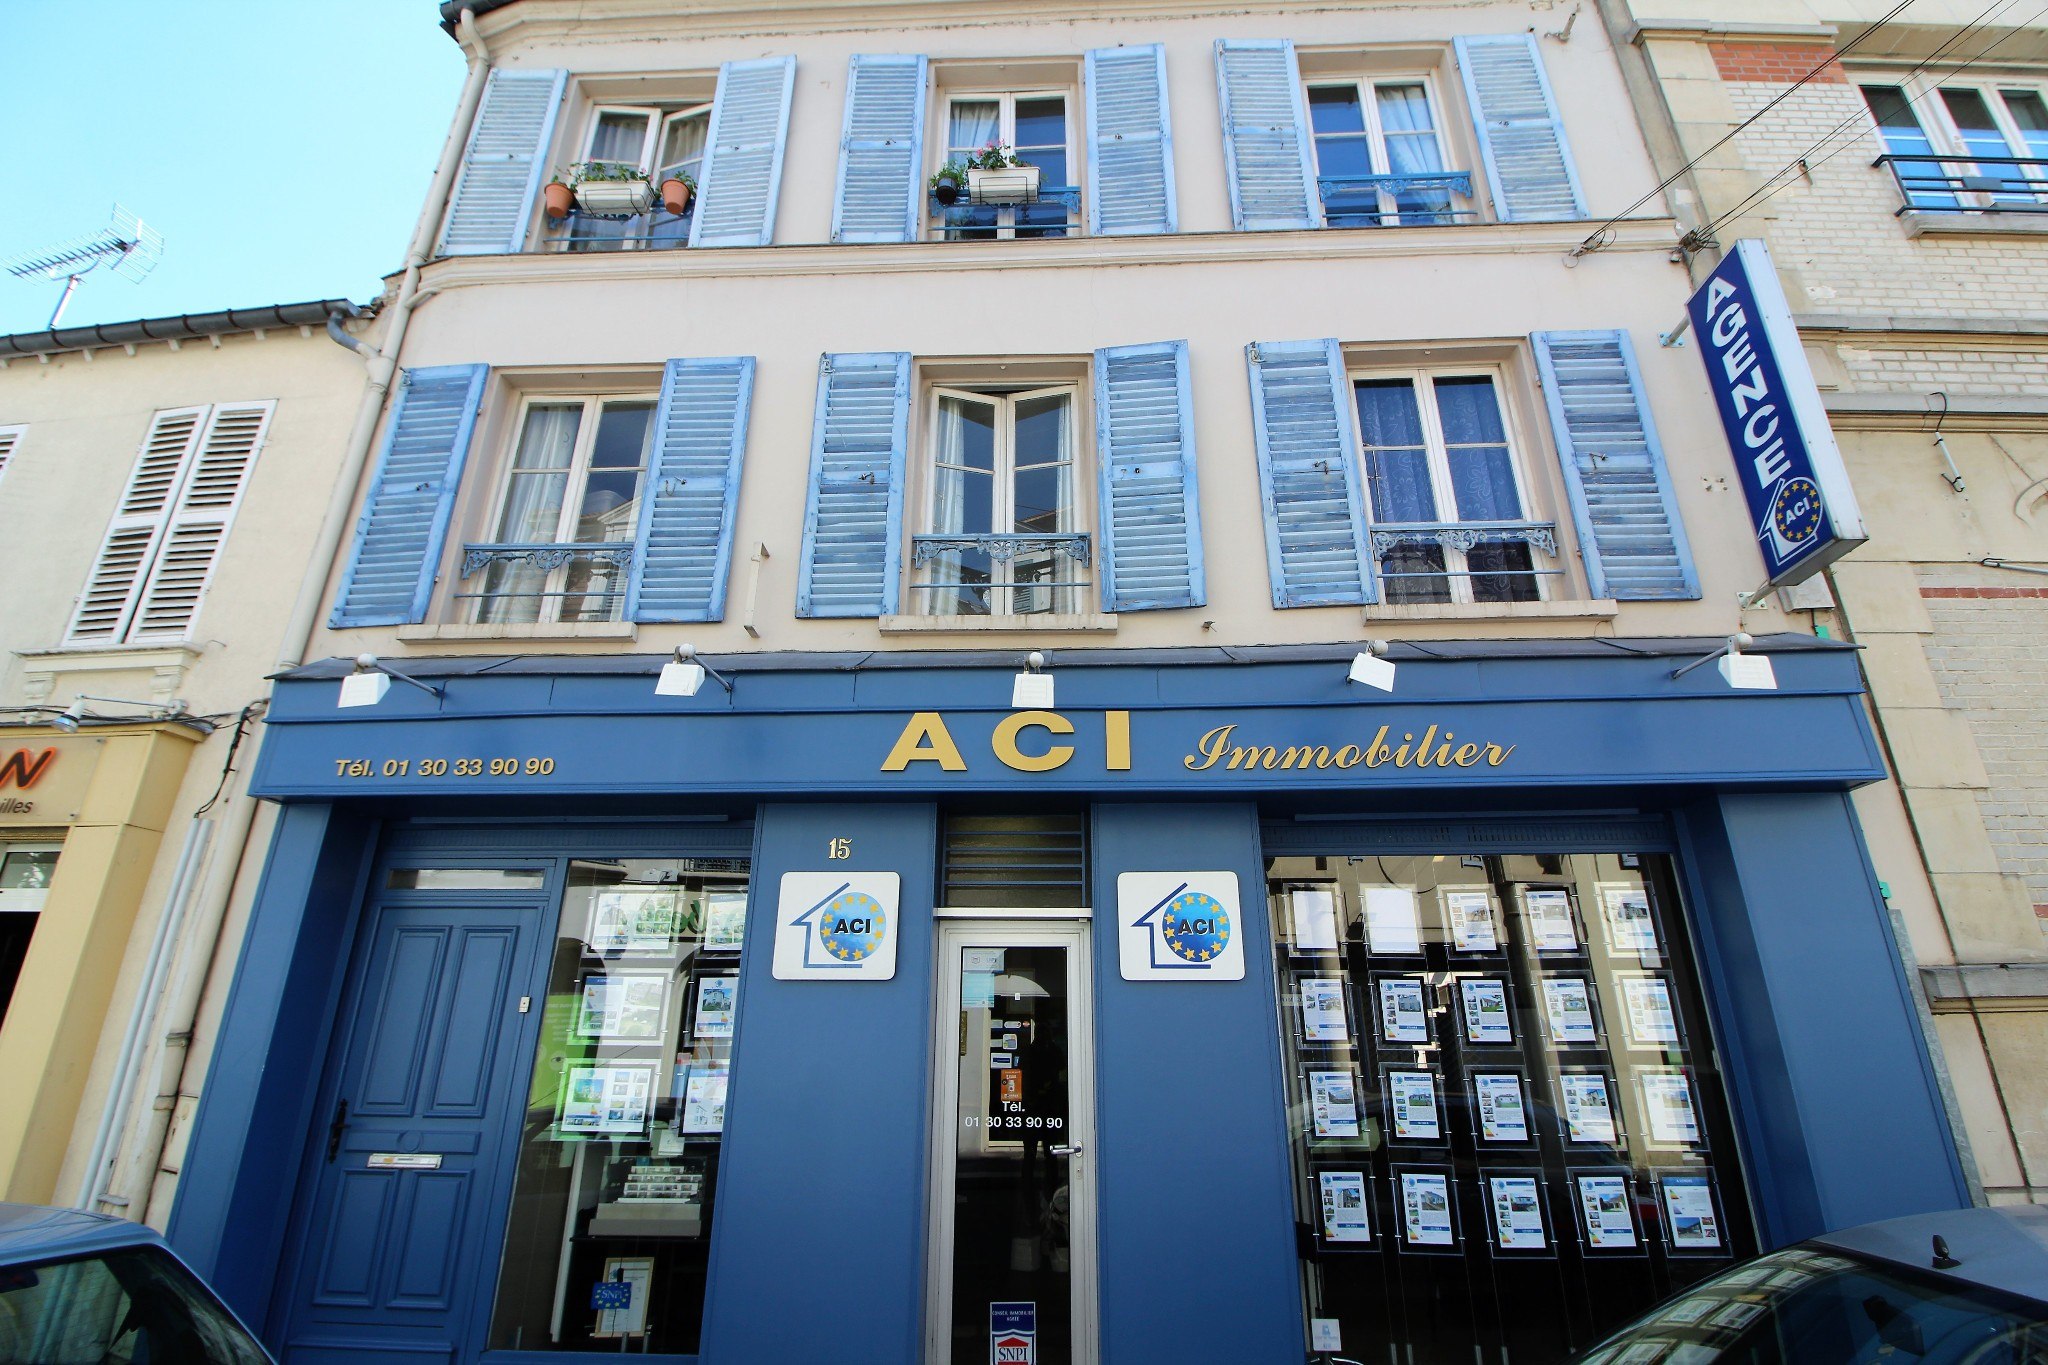 Agence immobili re aci 78 mantes la jolie for Agence immobiliere 78